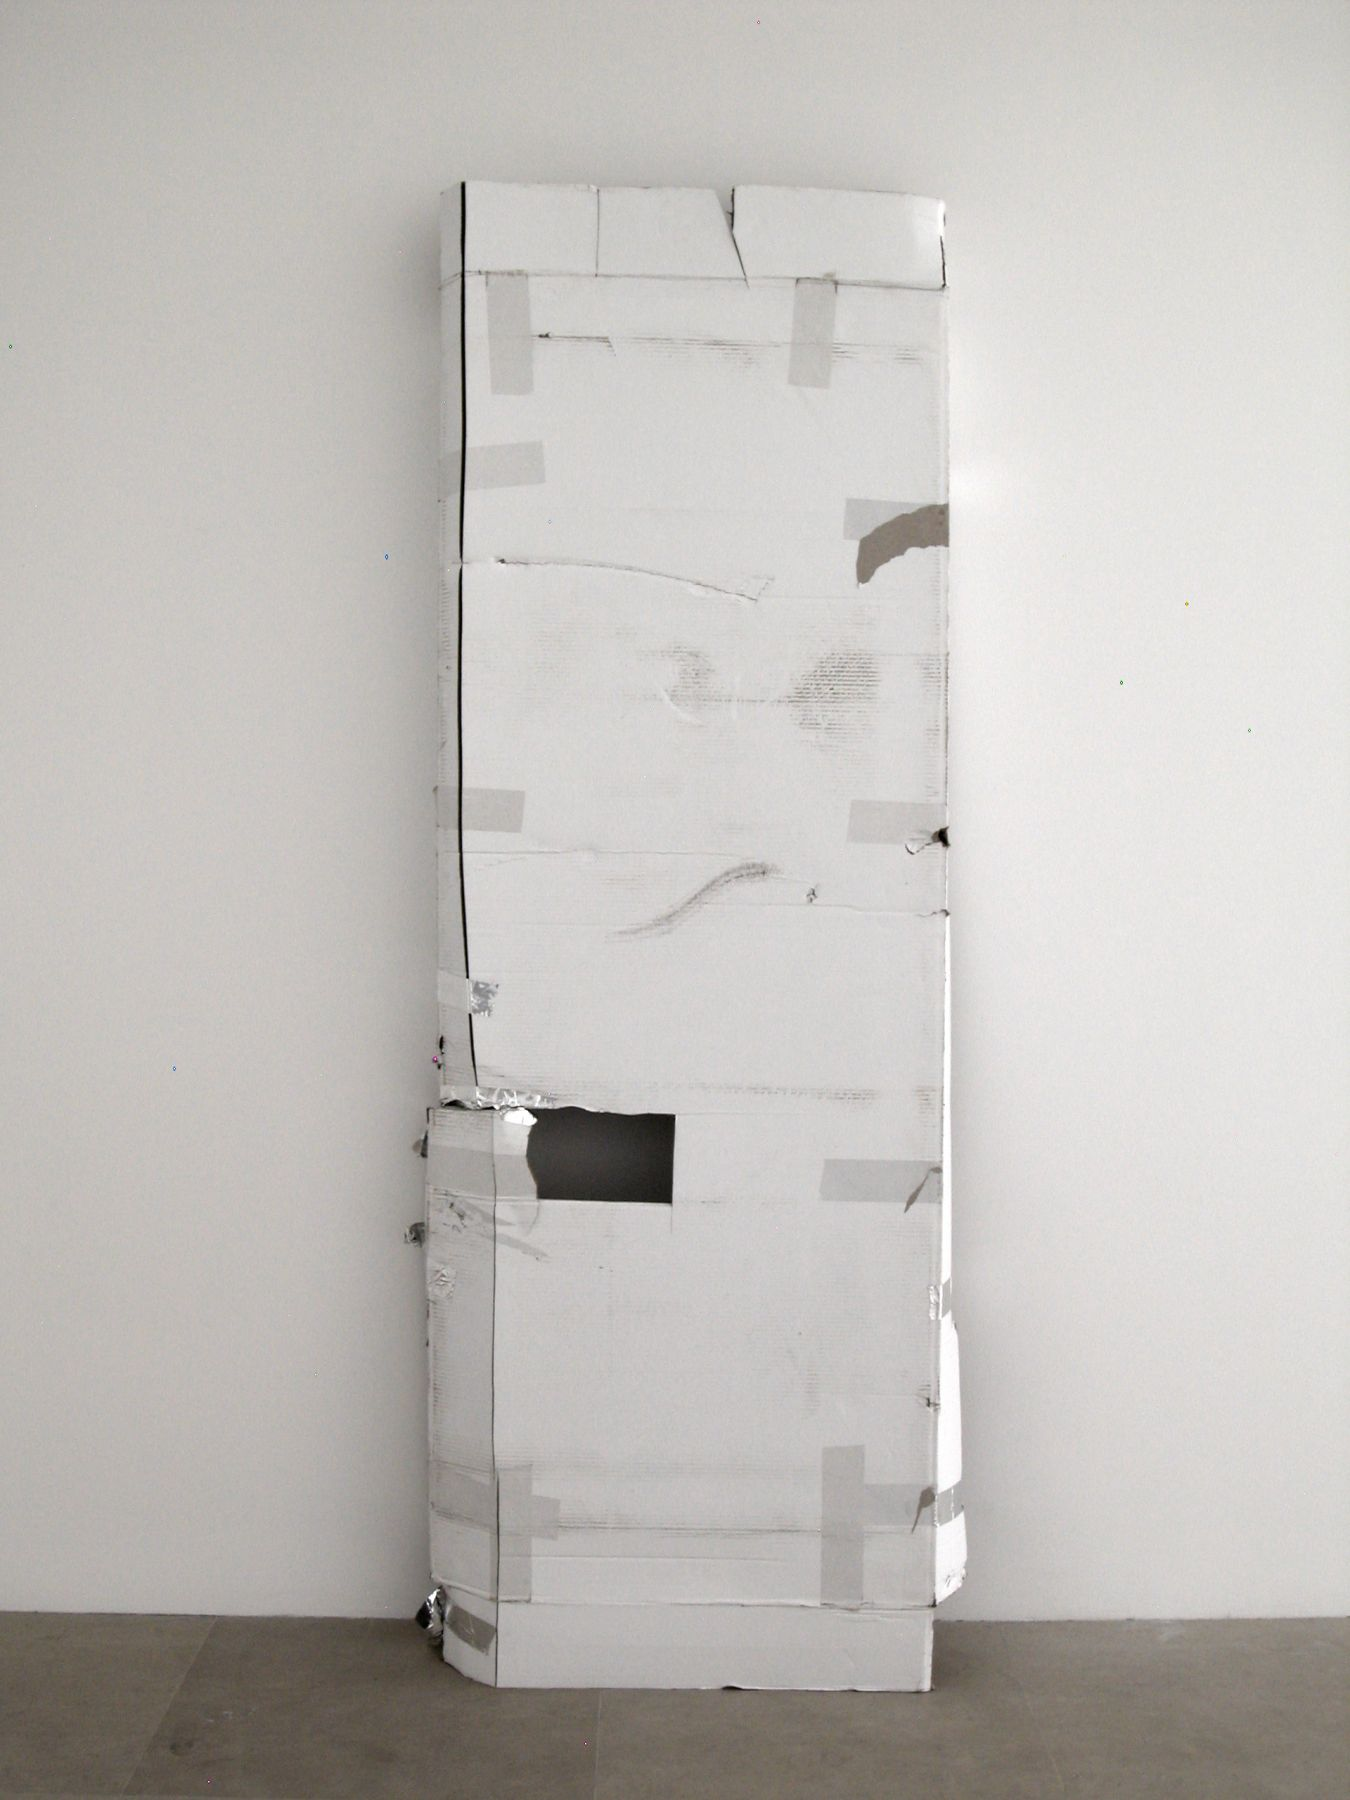 For the First and Last Day, 2008, Cardboard, tape, 85 x 32 x 10.5 inches